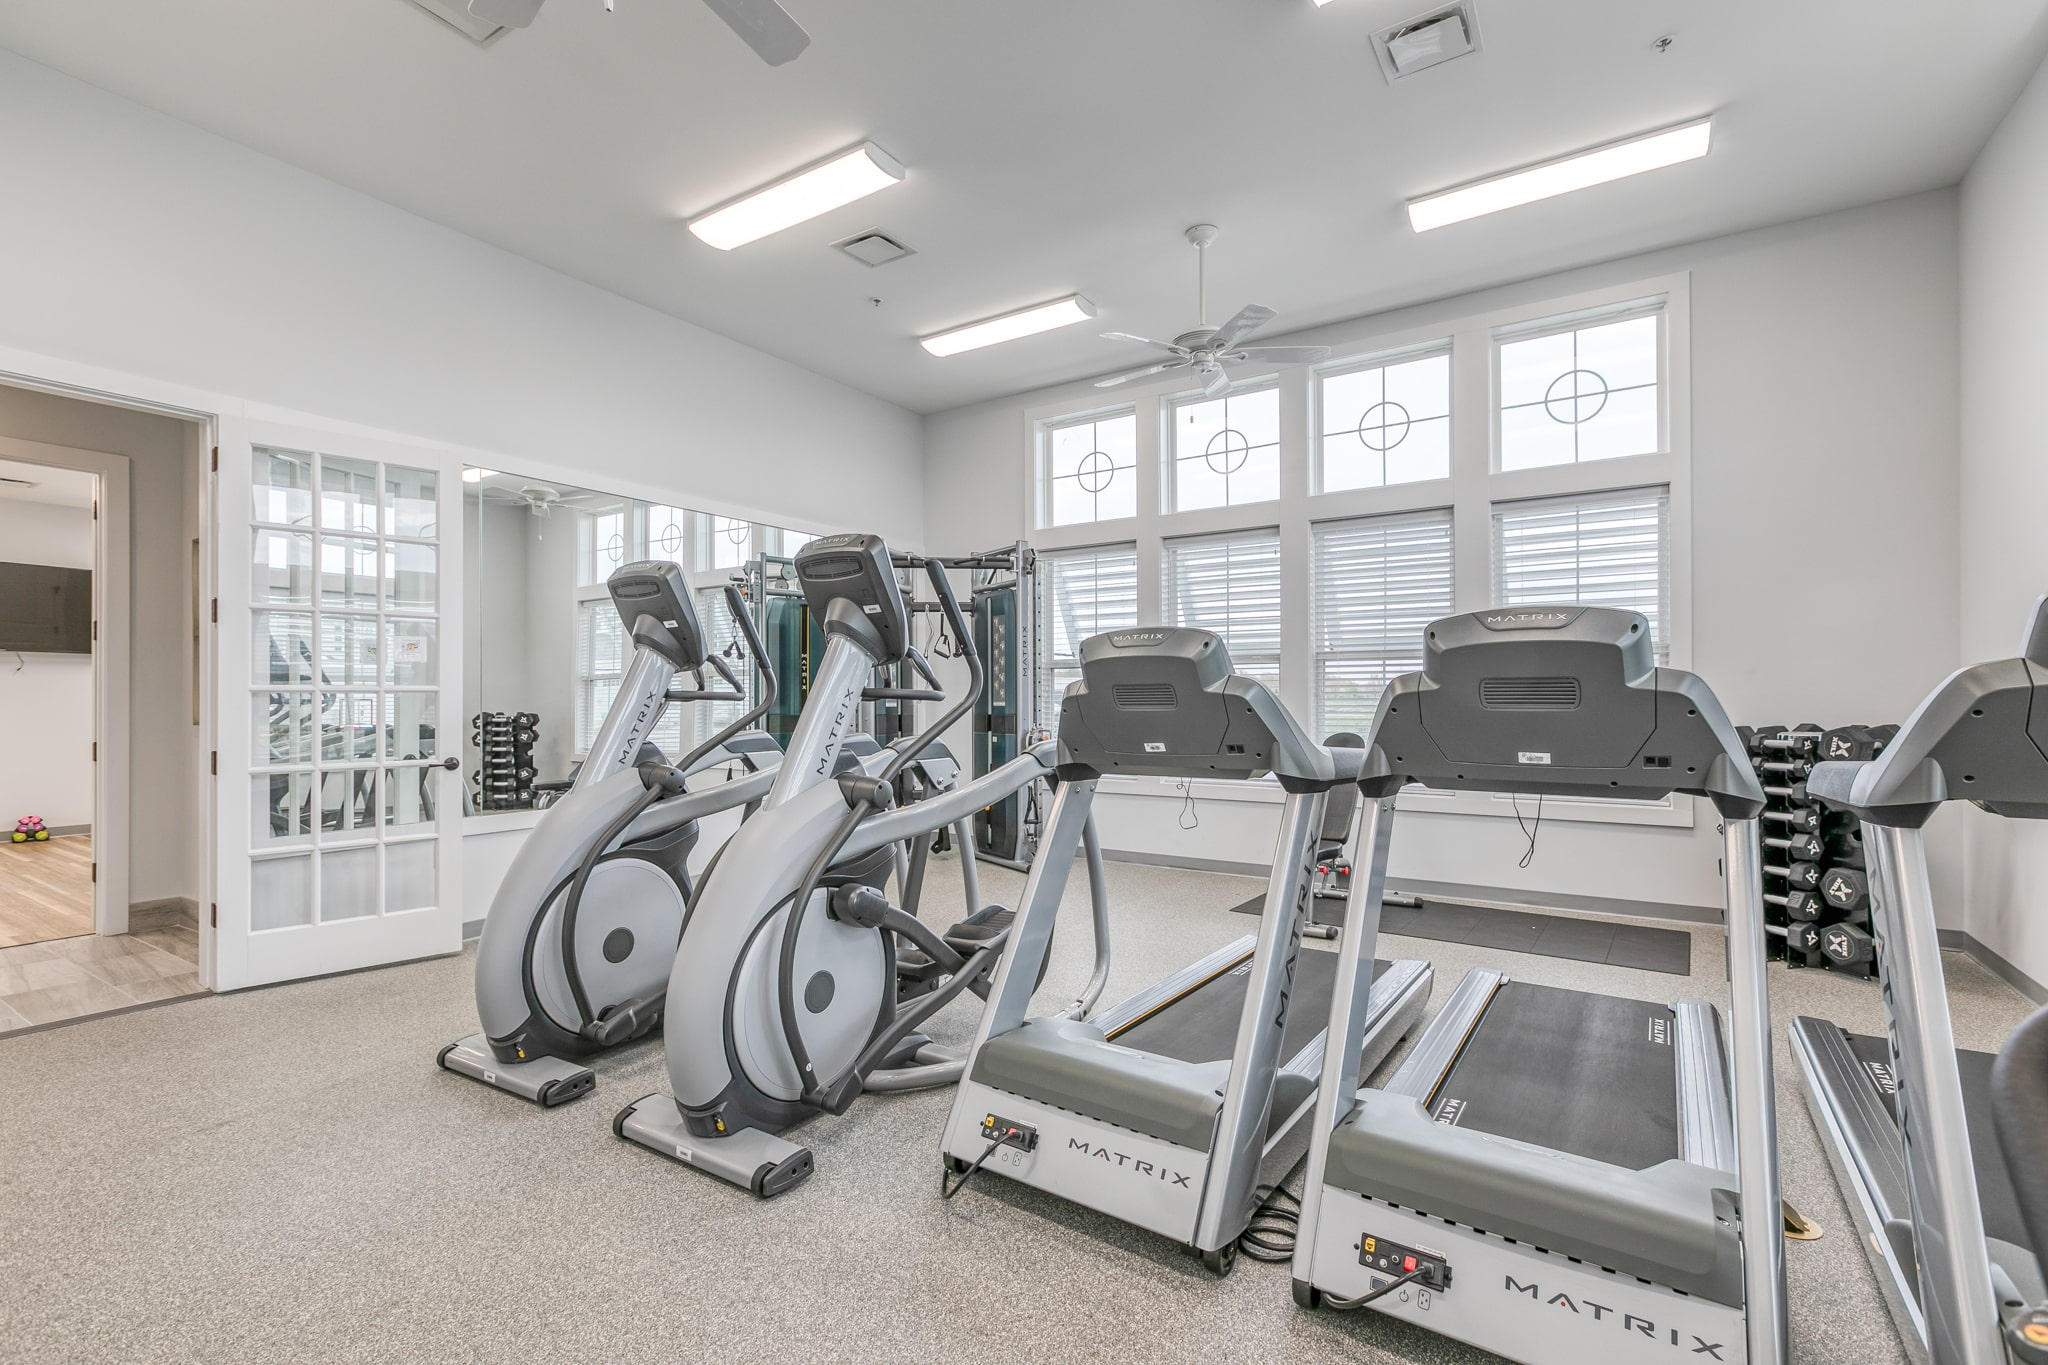 Image of the fitness center with treadmills inside the Bay Bride Cove Community